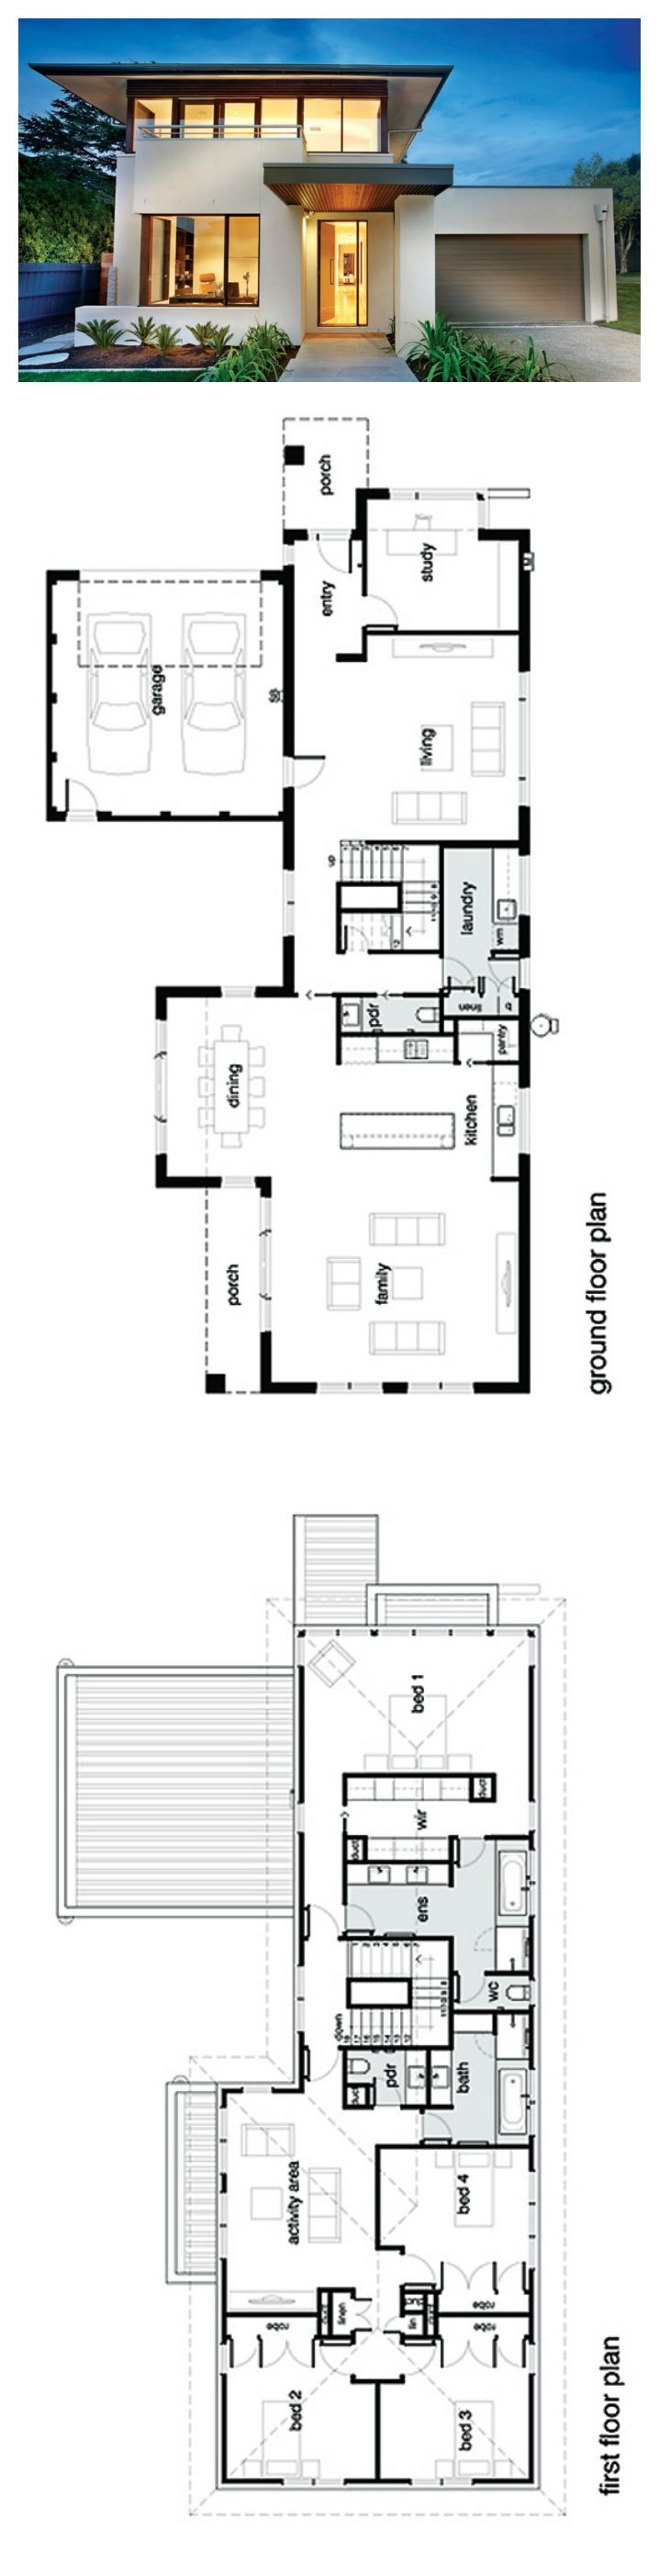 The 25 best ideas about modern house plans on pinterest for Modern home floor plans